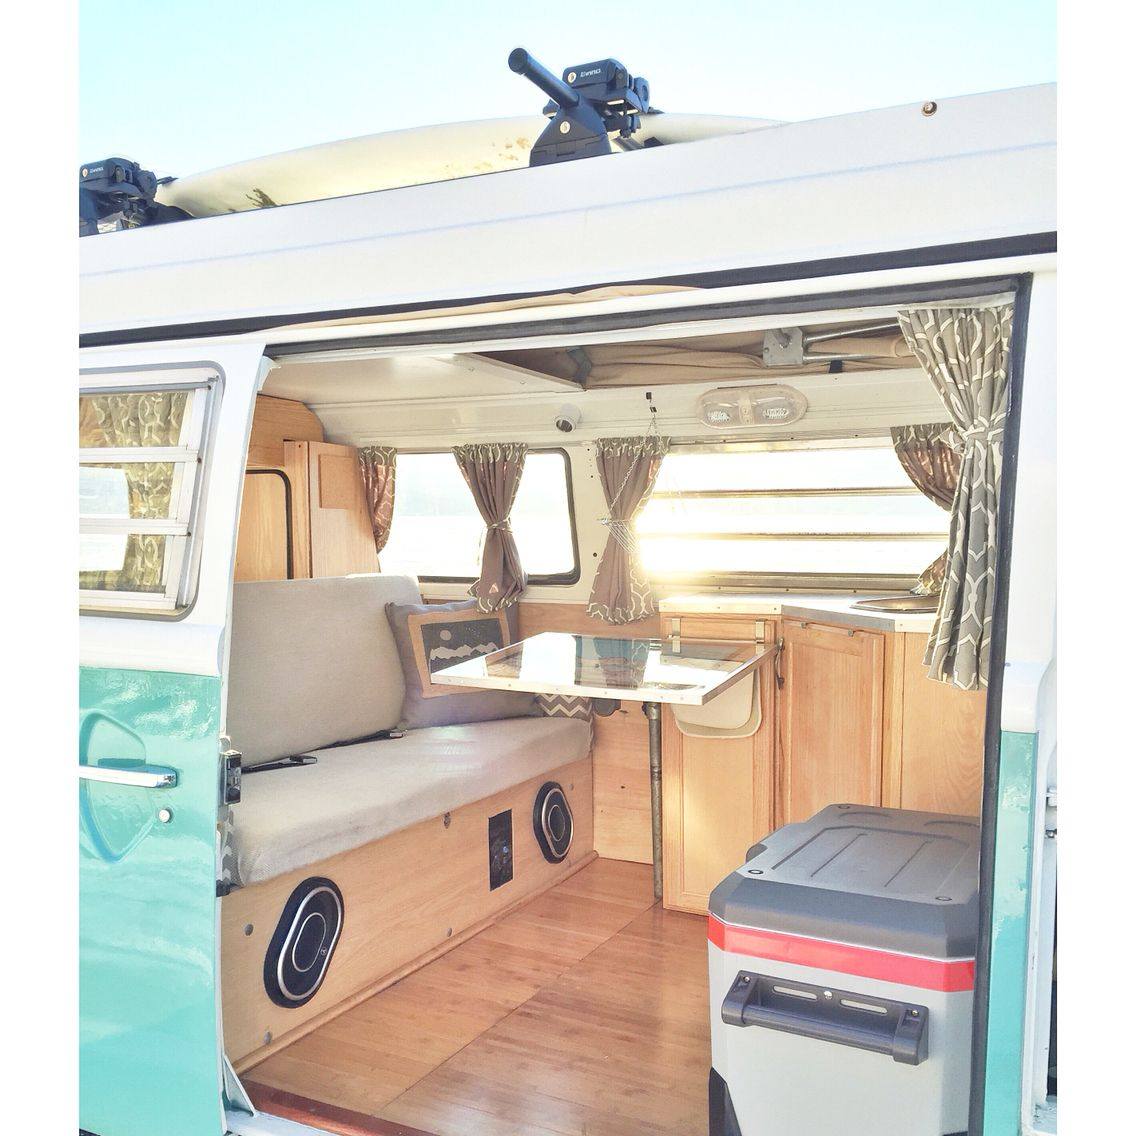 212 Best Diy Vw Images On Pinterest: Remodeled Interior Of Our 1975 VW Bay Window Bus.